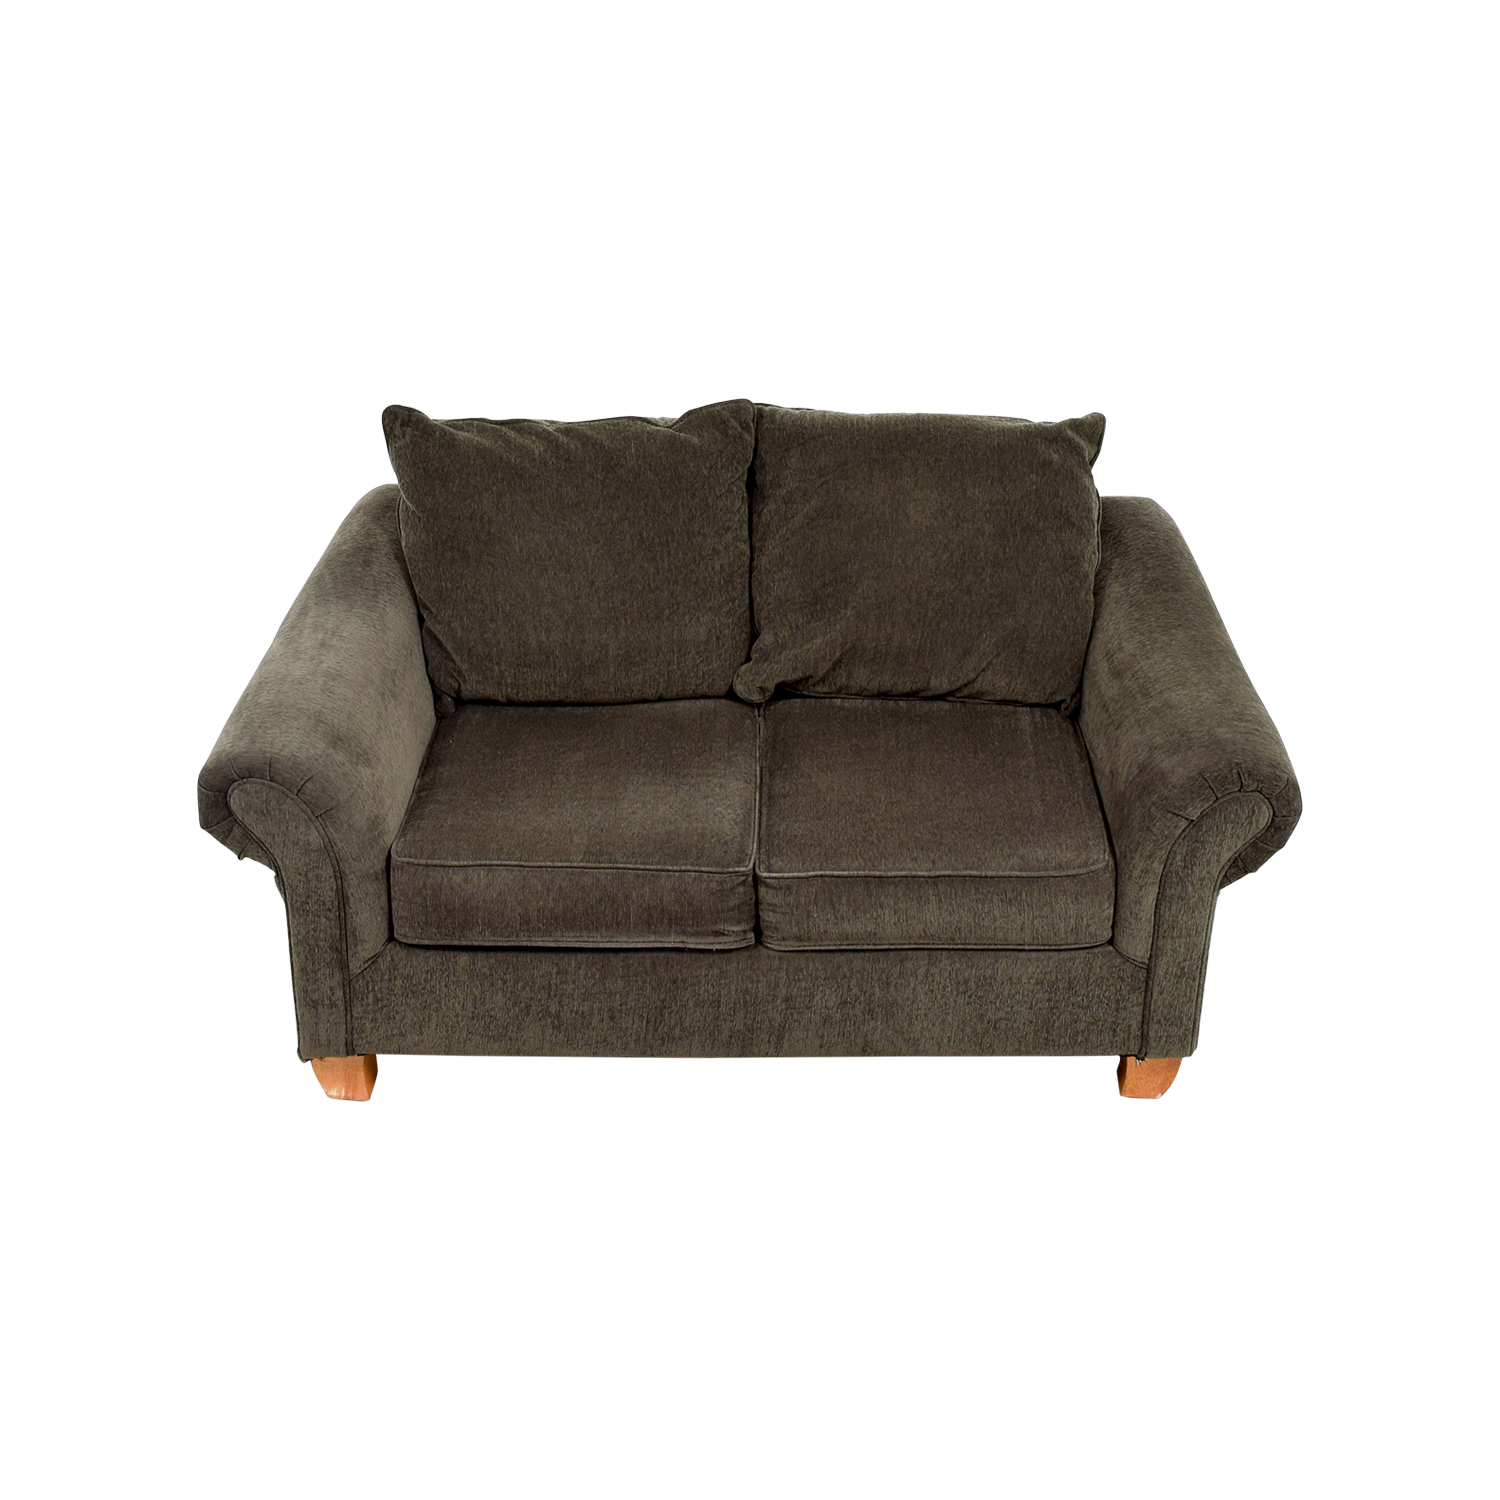 shop Star Furniture Star Furniture Brown Curved Arms Loveseat online